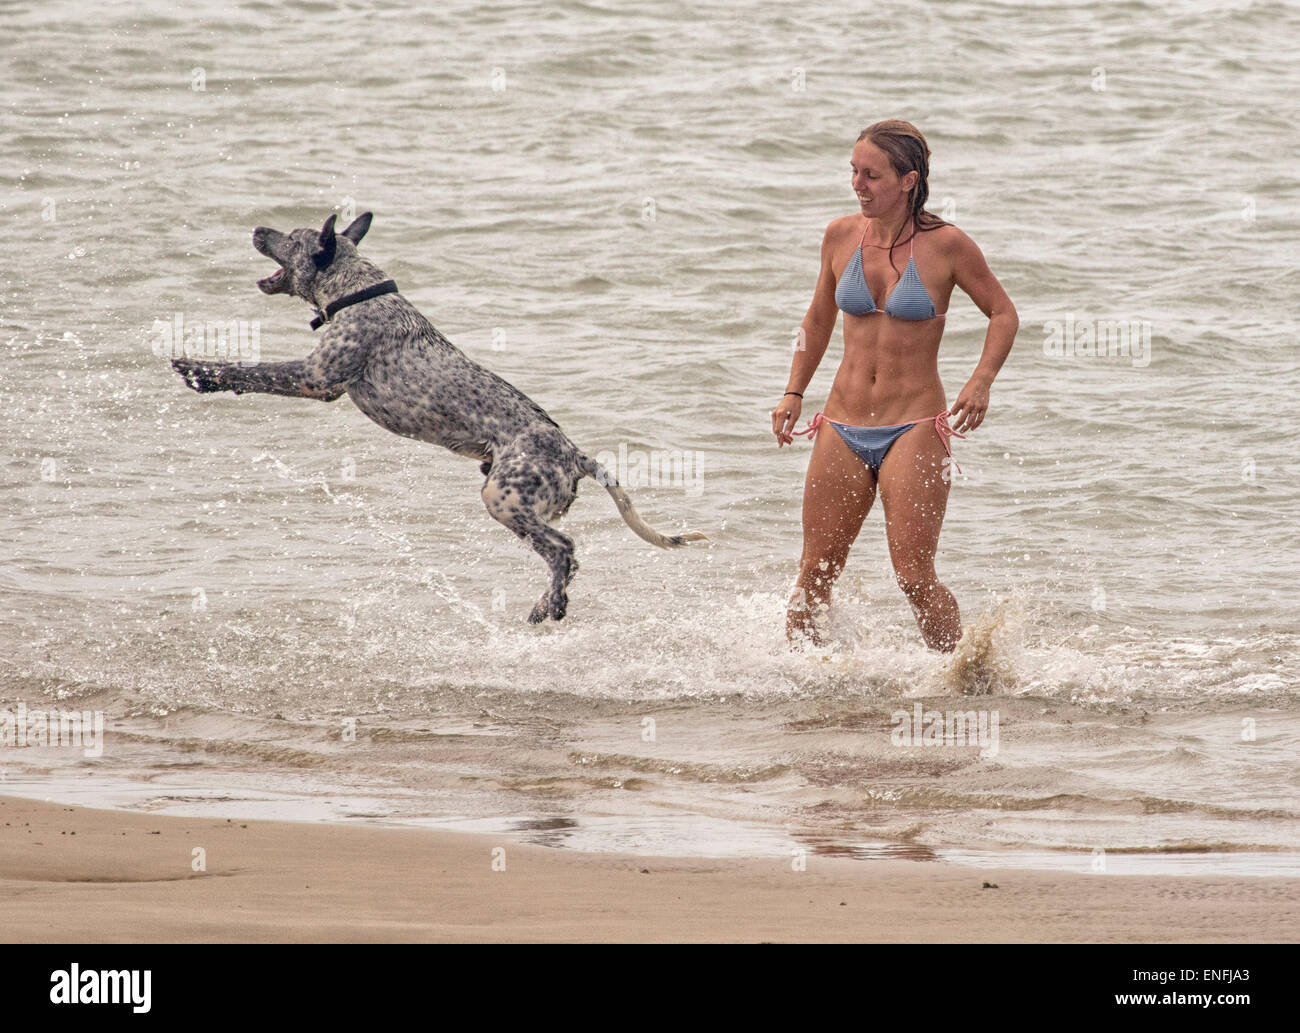 Young slim woman in bikini playing with leaping dog in shallow water at beach - Stock Image